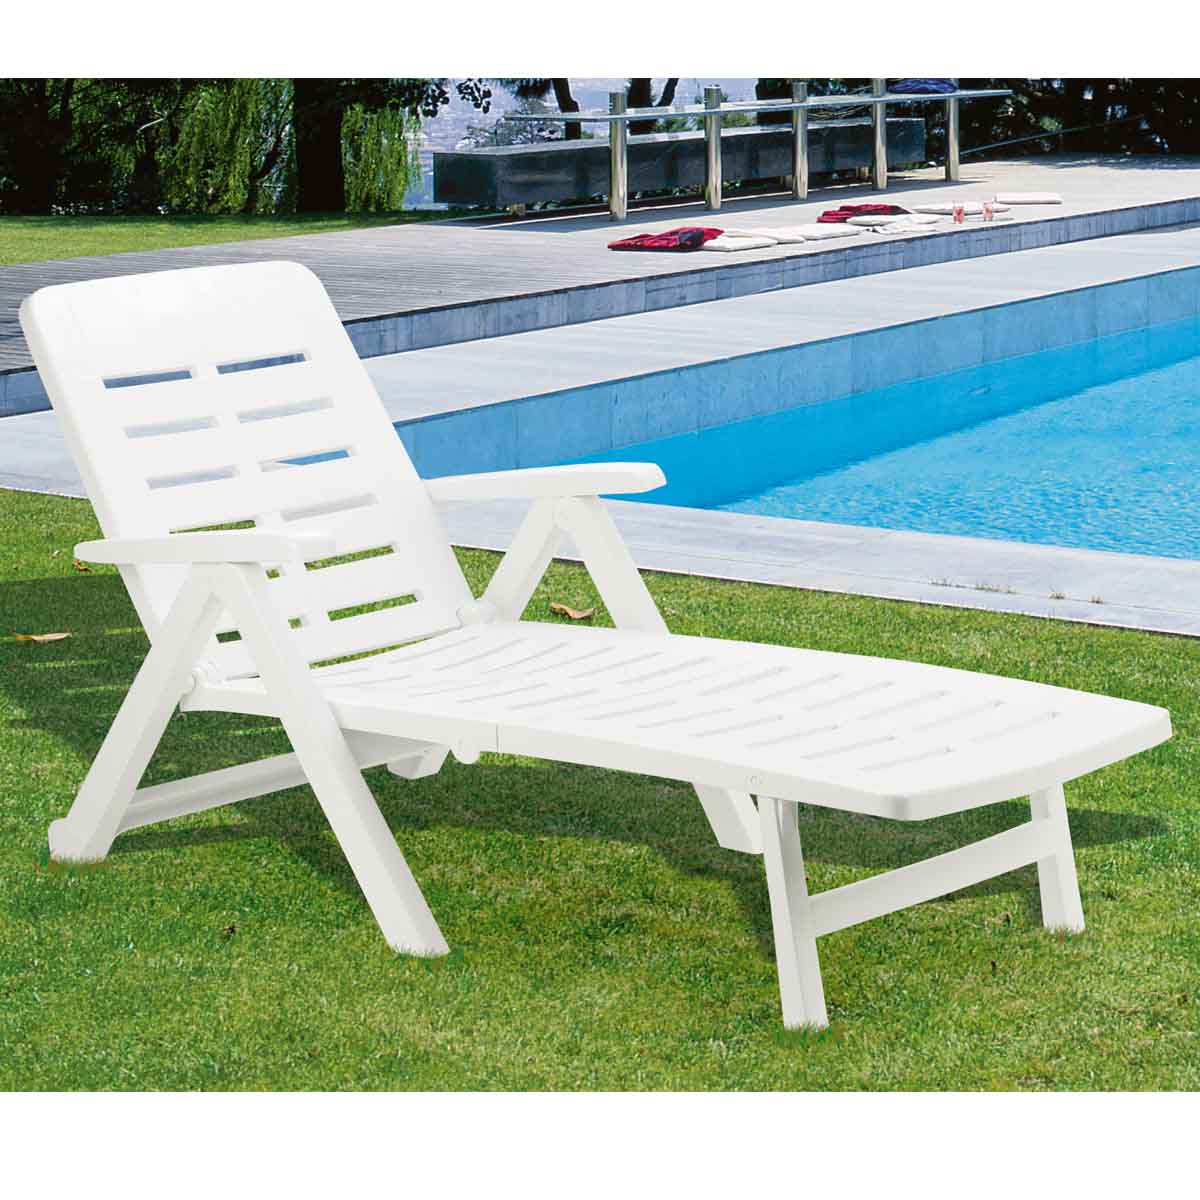 Table Pliante Multi Usage Banc De Jardin Plastique Blanc Beautiful Table De Jardin